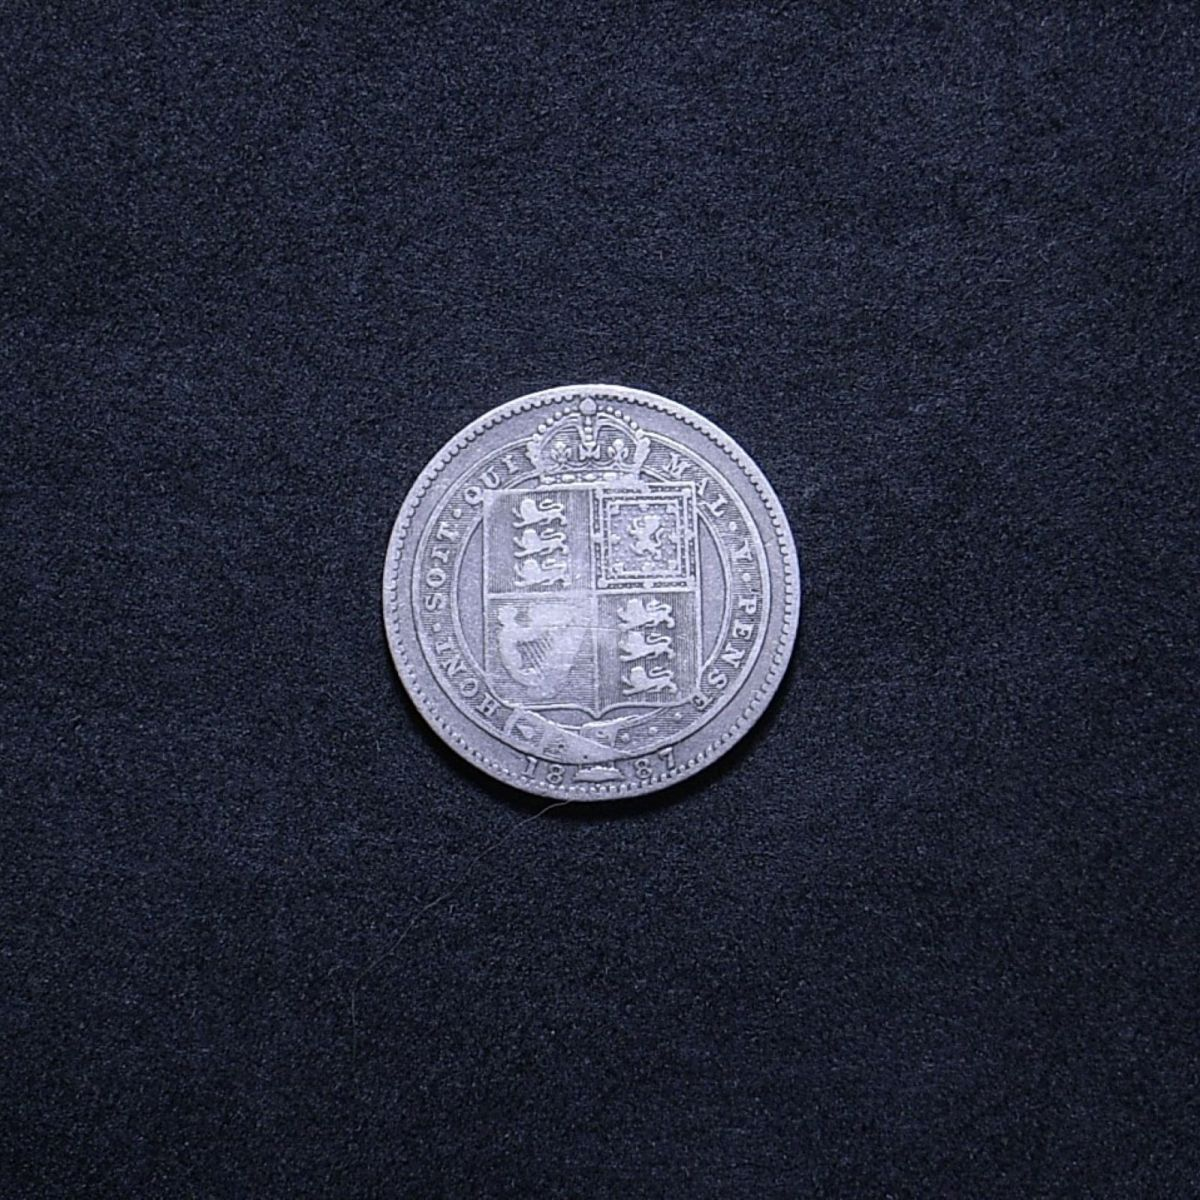 UK 1887 shilling reverse showing the coin's overall appearance